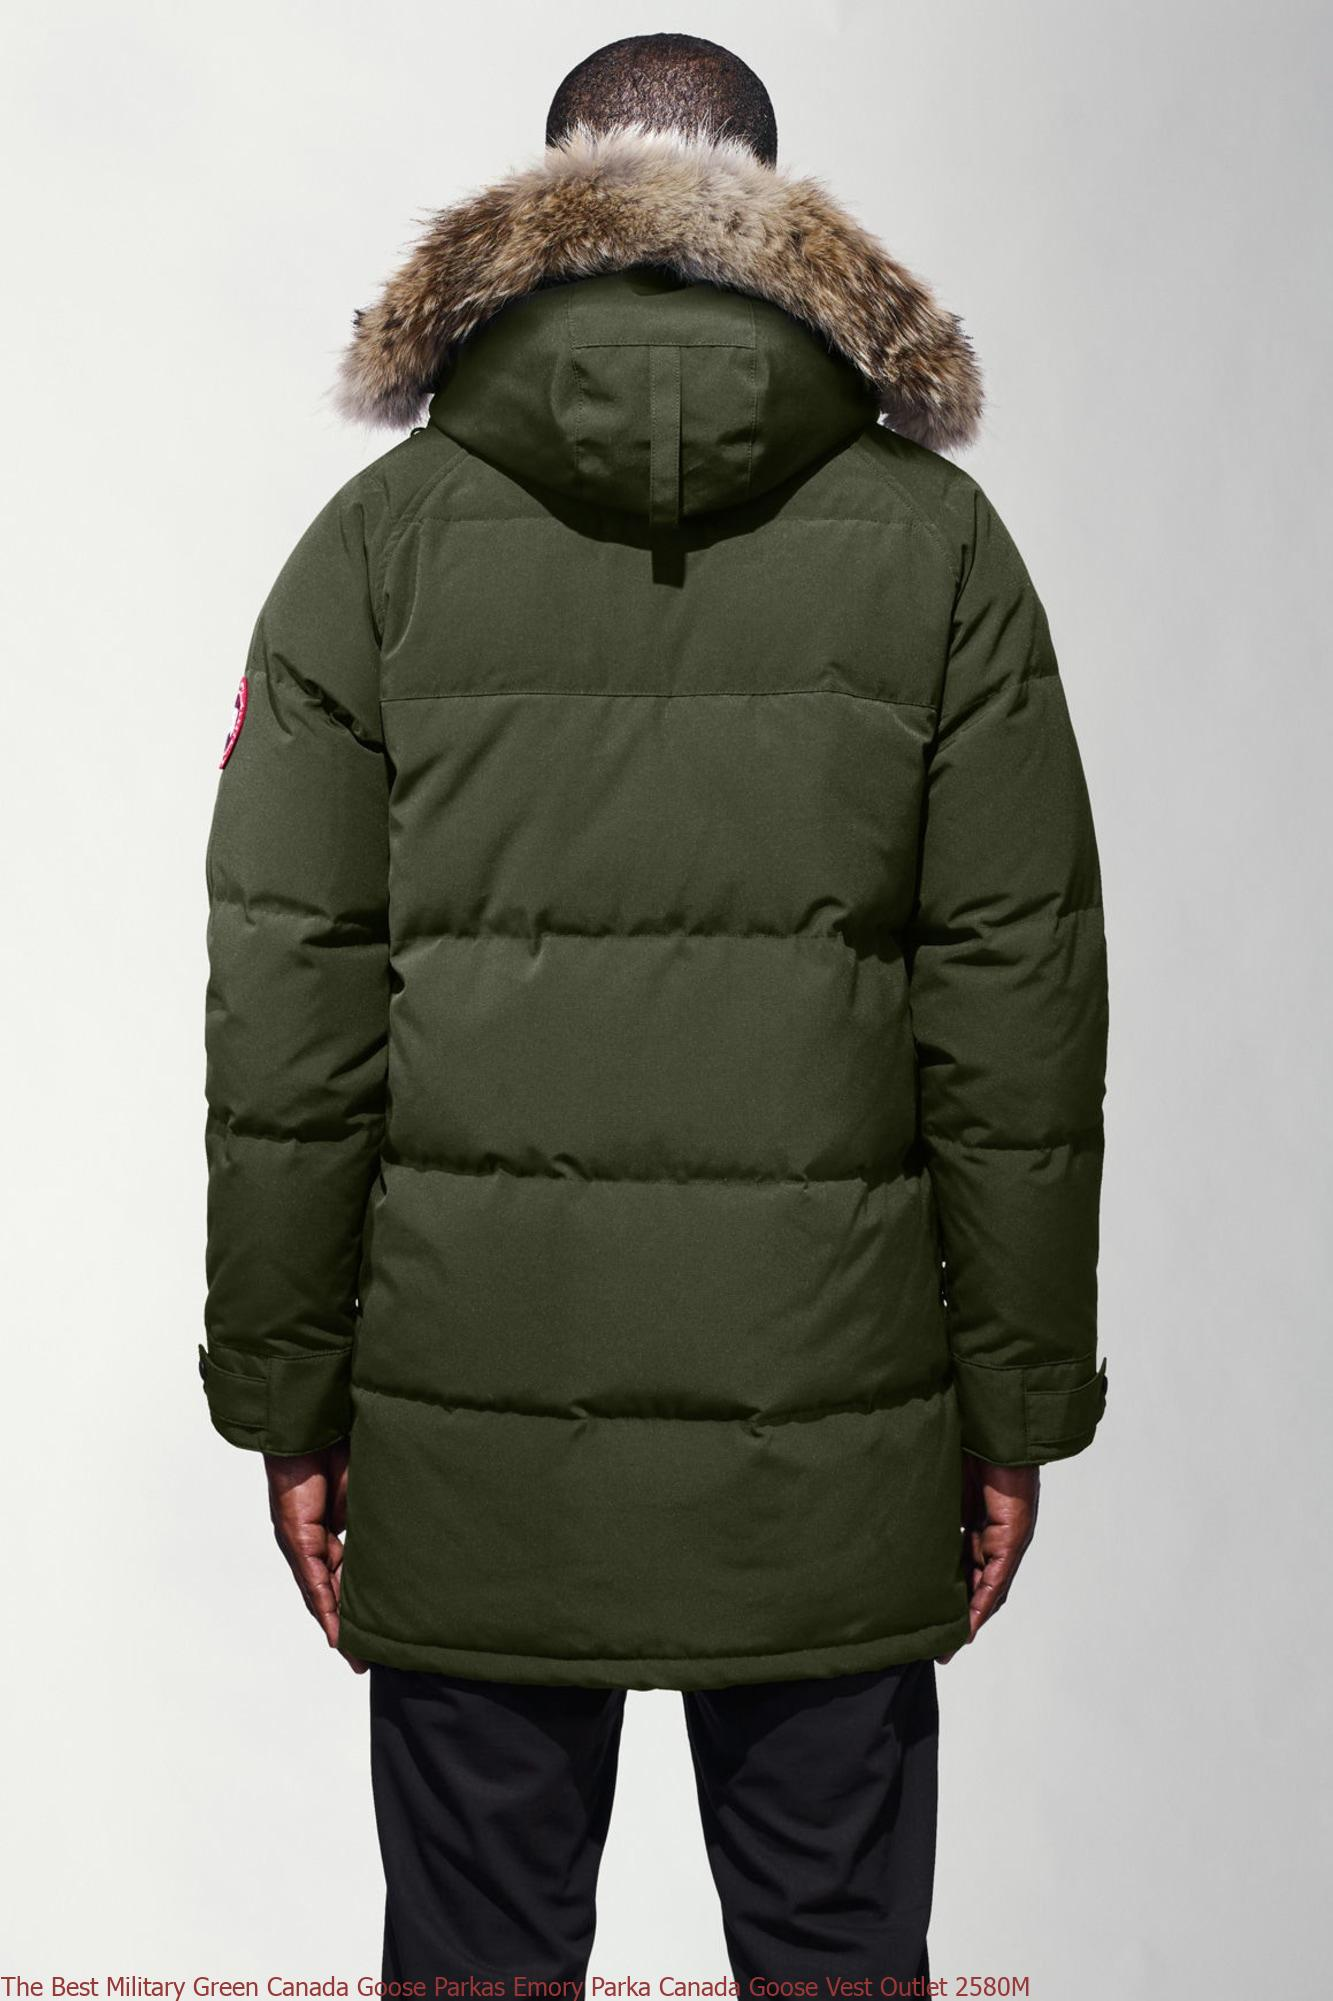 MILITARY GREEN Men's Casual Jackets Canada Goose Mens Emory